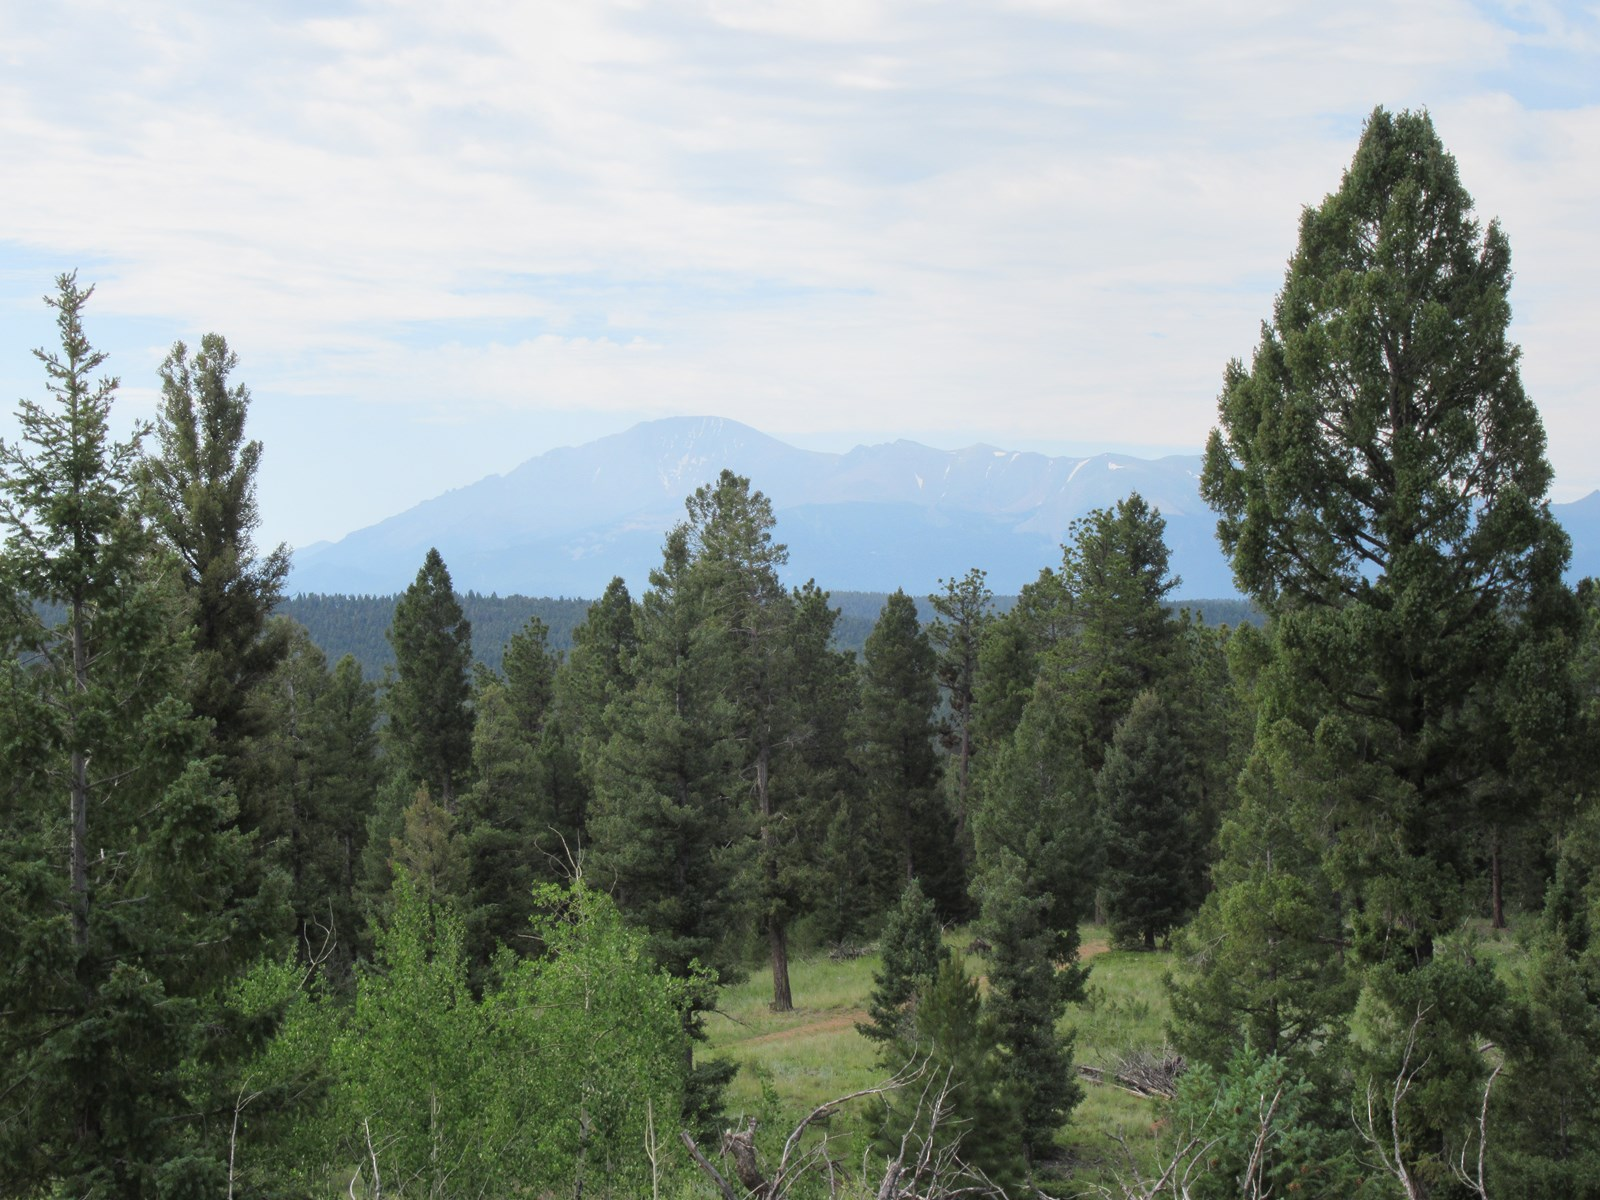 35 Acres in Woodland Park Colorado Bordering National Forest